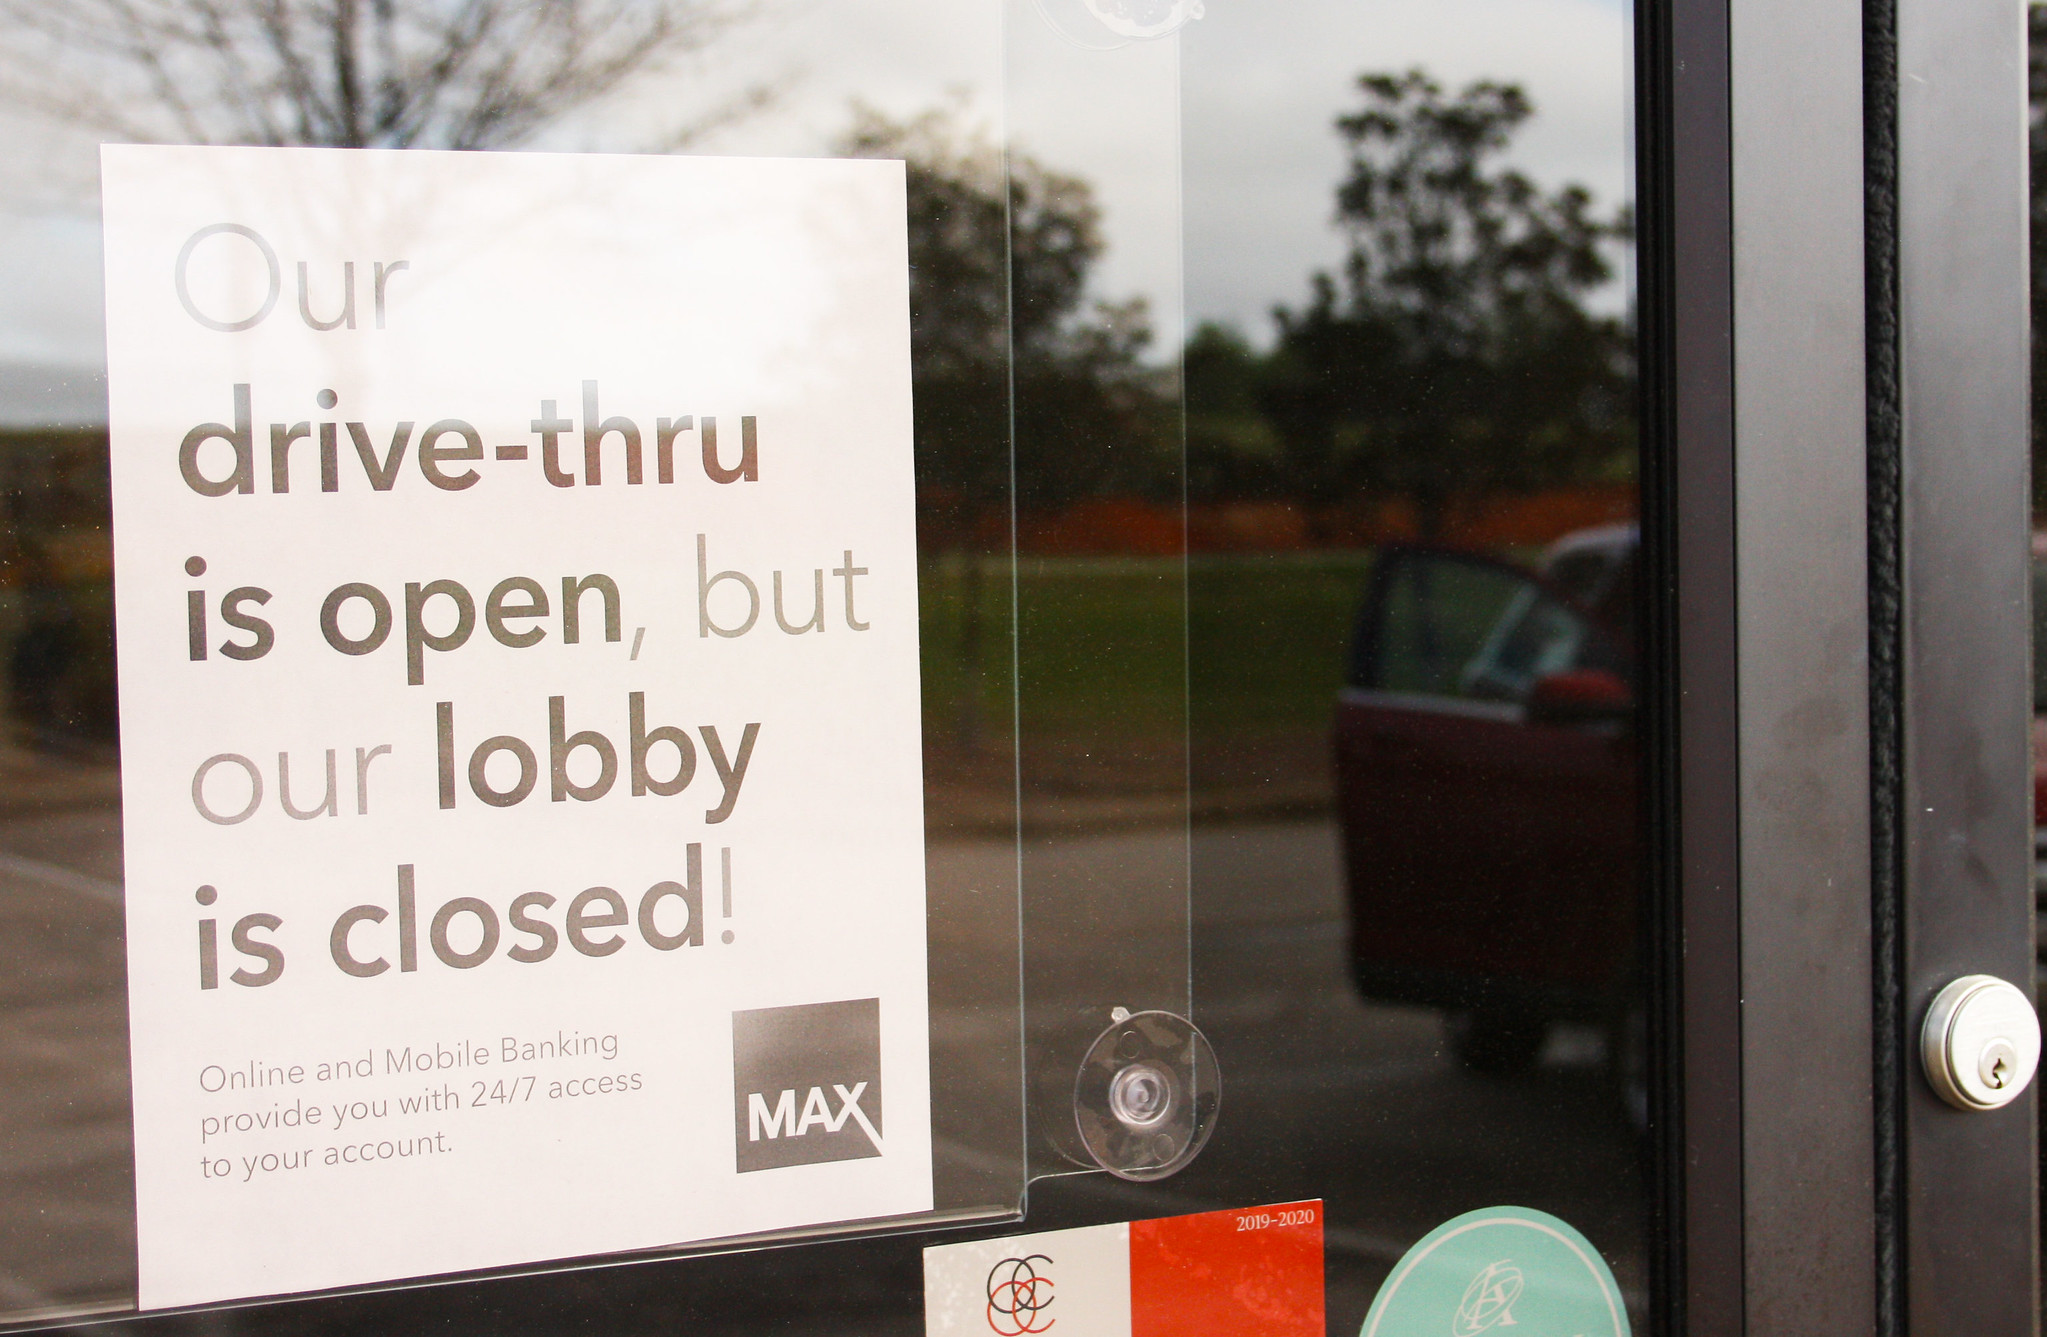 Closed sign during COVID-19